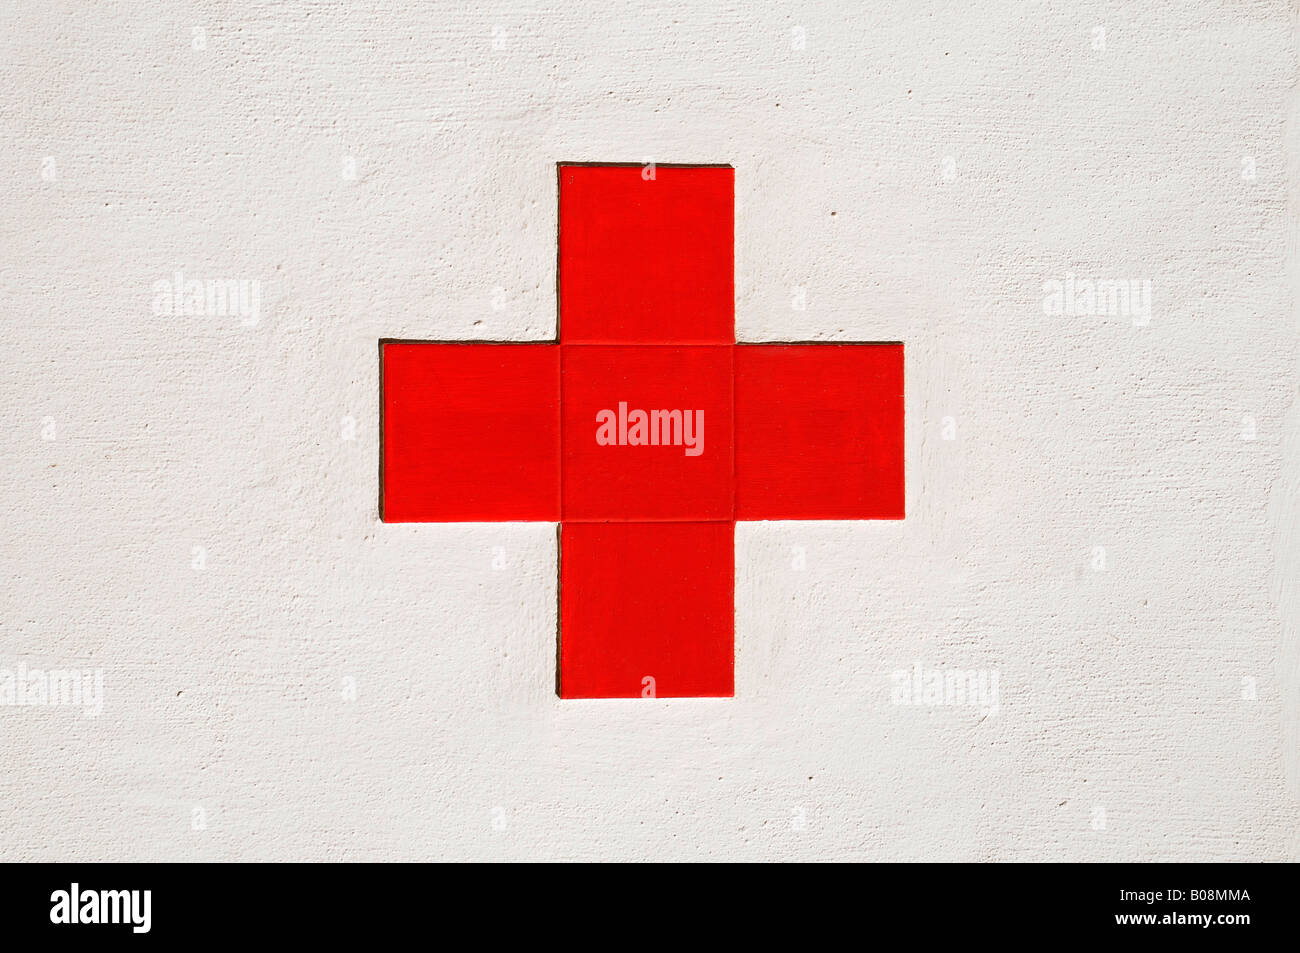 Red Cross symbol, Denia, Valencia, Costa Blanca, Spain - Stock Image